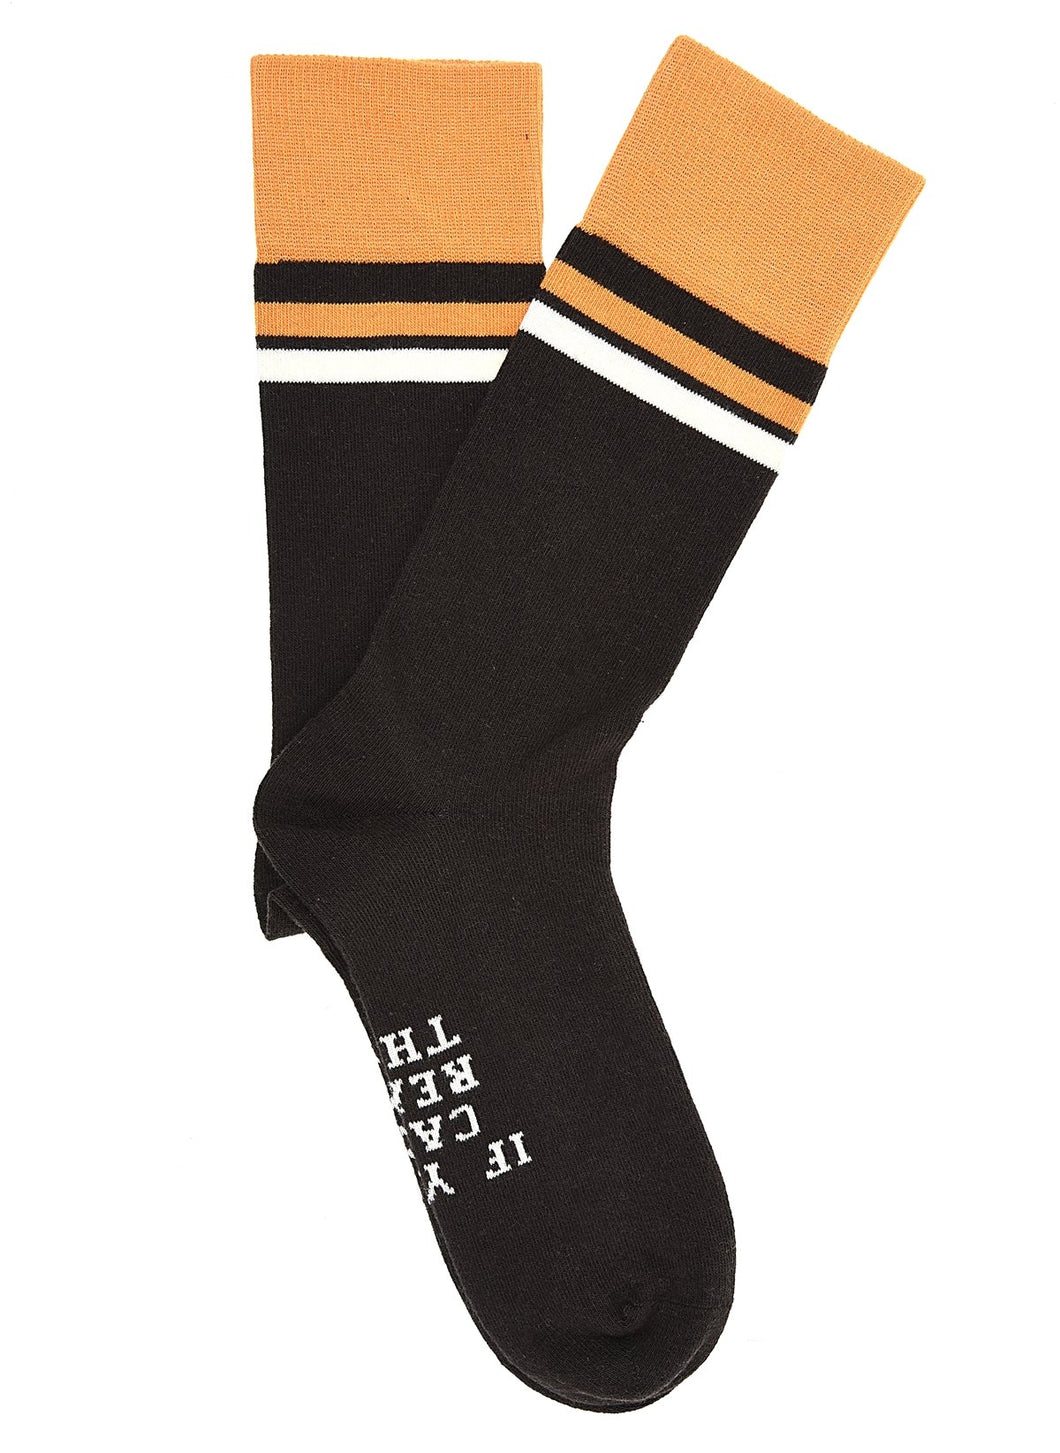 Coffee socks,Mens socks, men socks, ankle socks, cotton socks, scented socks, funky socks, colourful socks